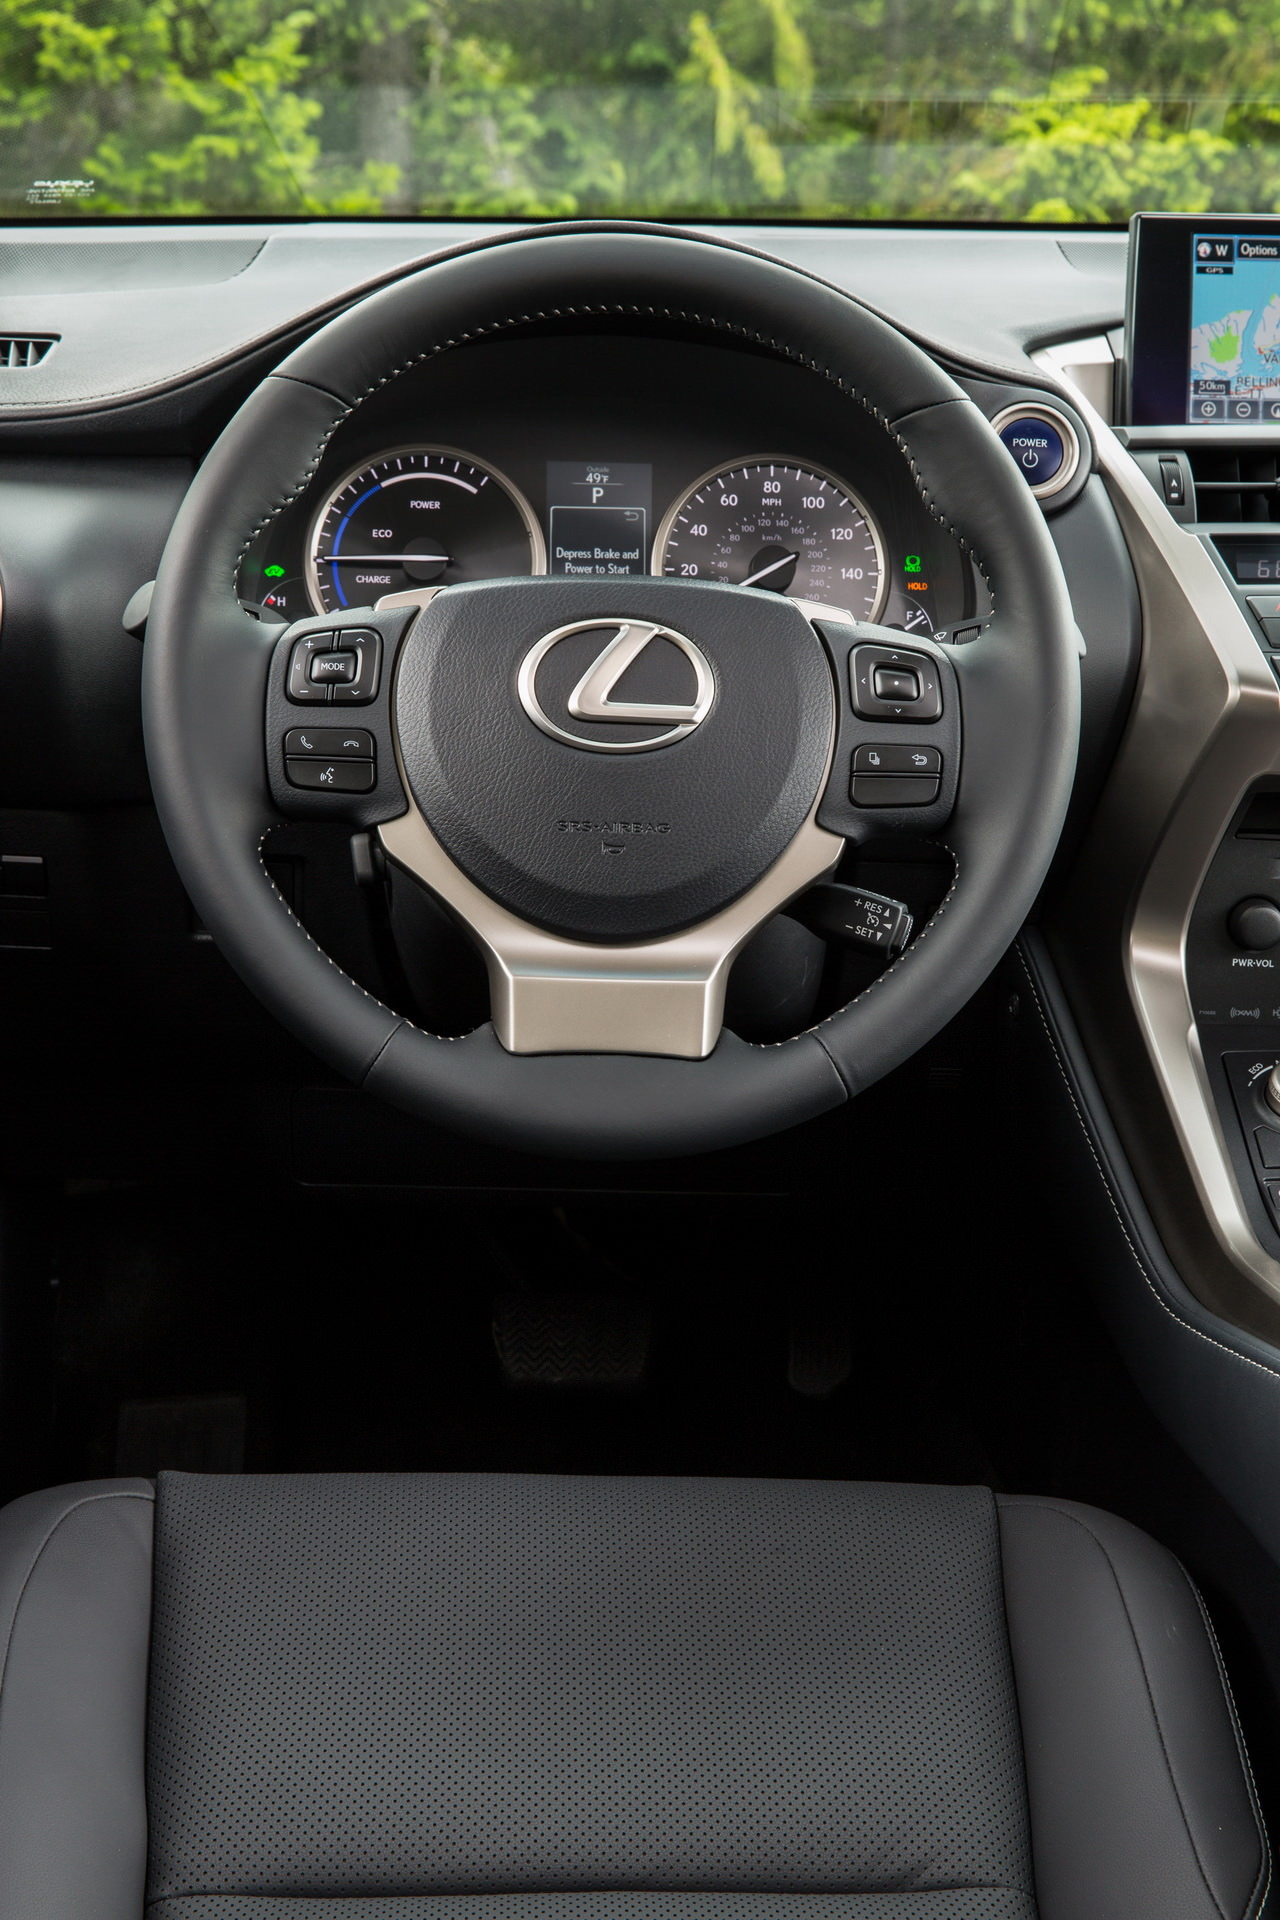 essai lexus nx 300h 2wd un suv hybride la fois sexy et vertueux photo 24 l 39 argus. Black Bedroom Furniture Sets. Home Design Ideas